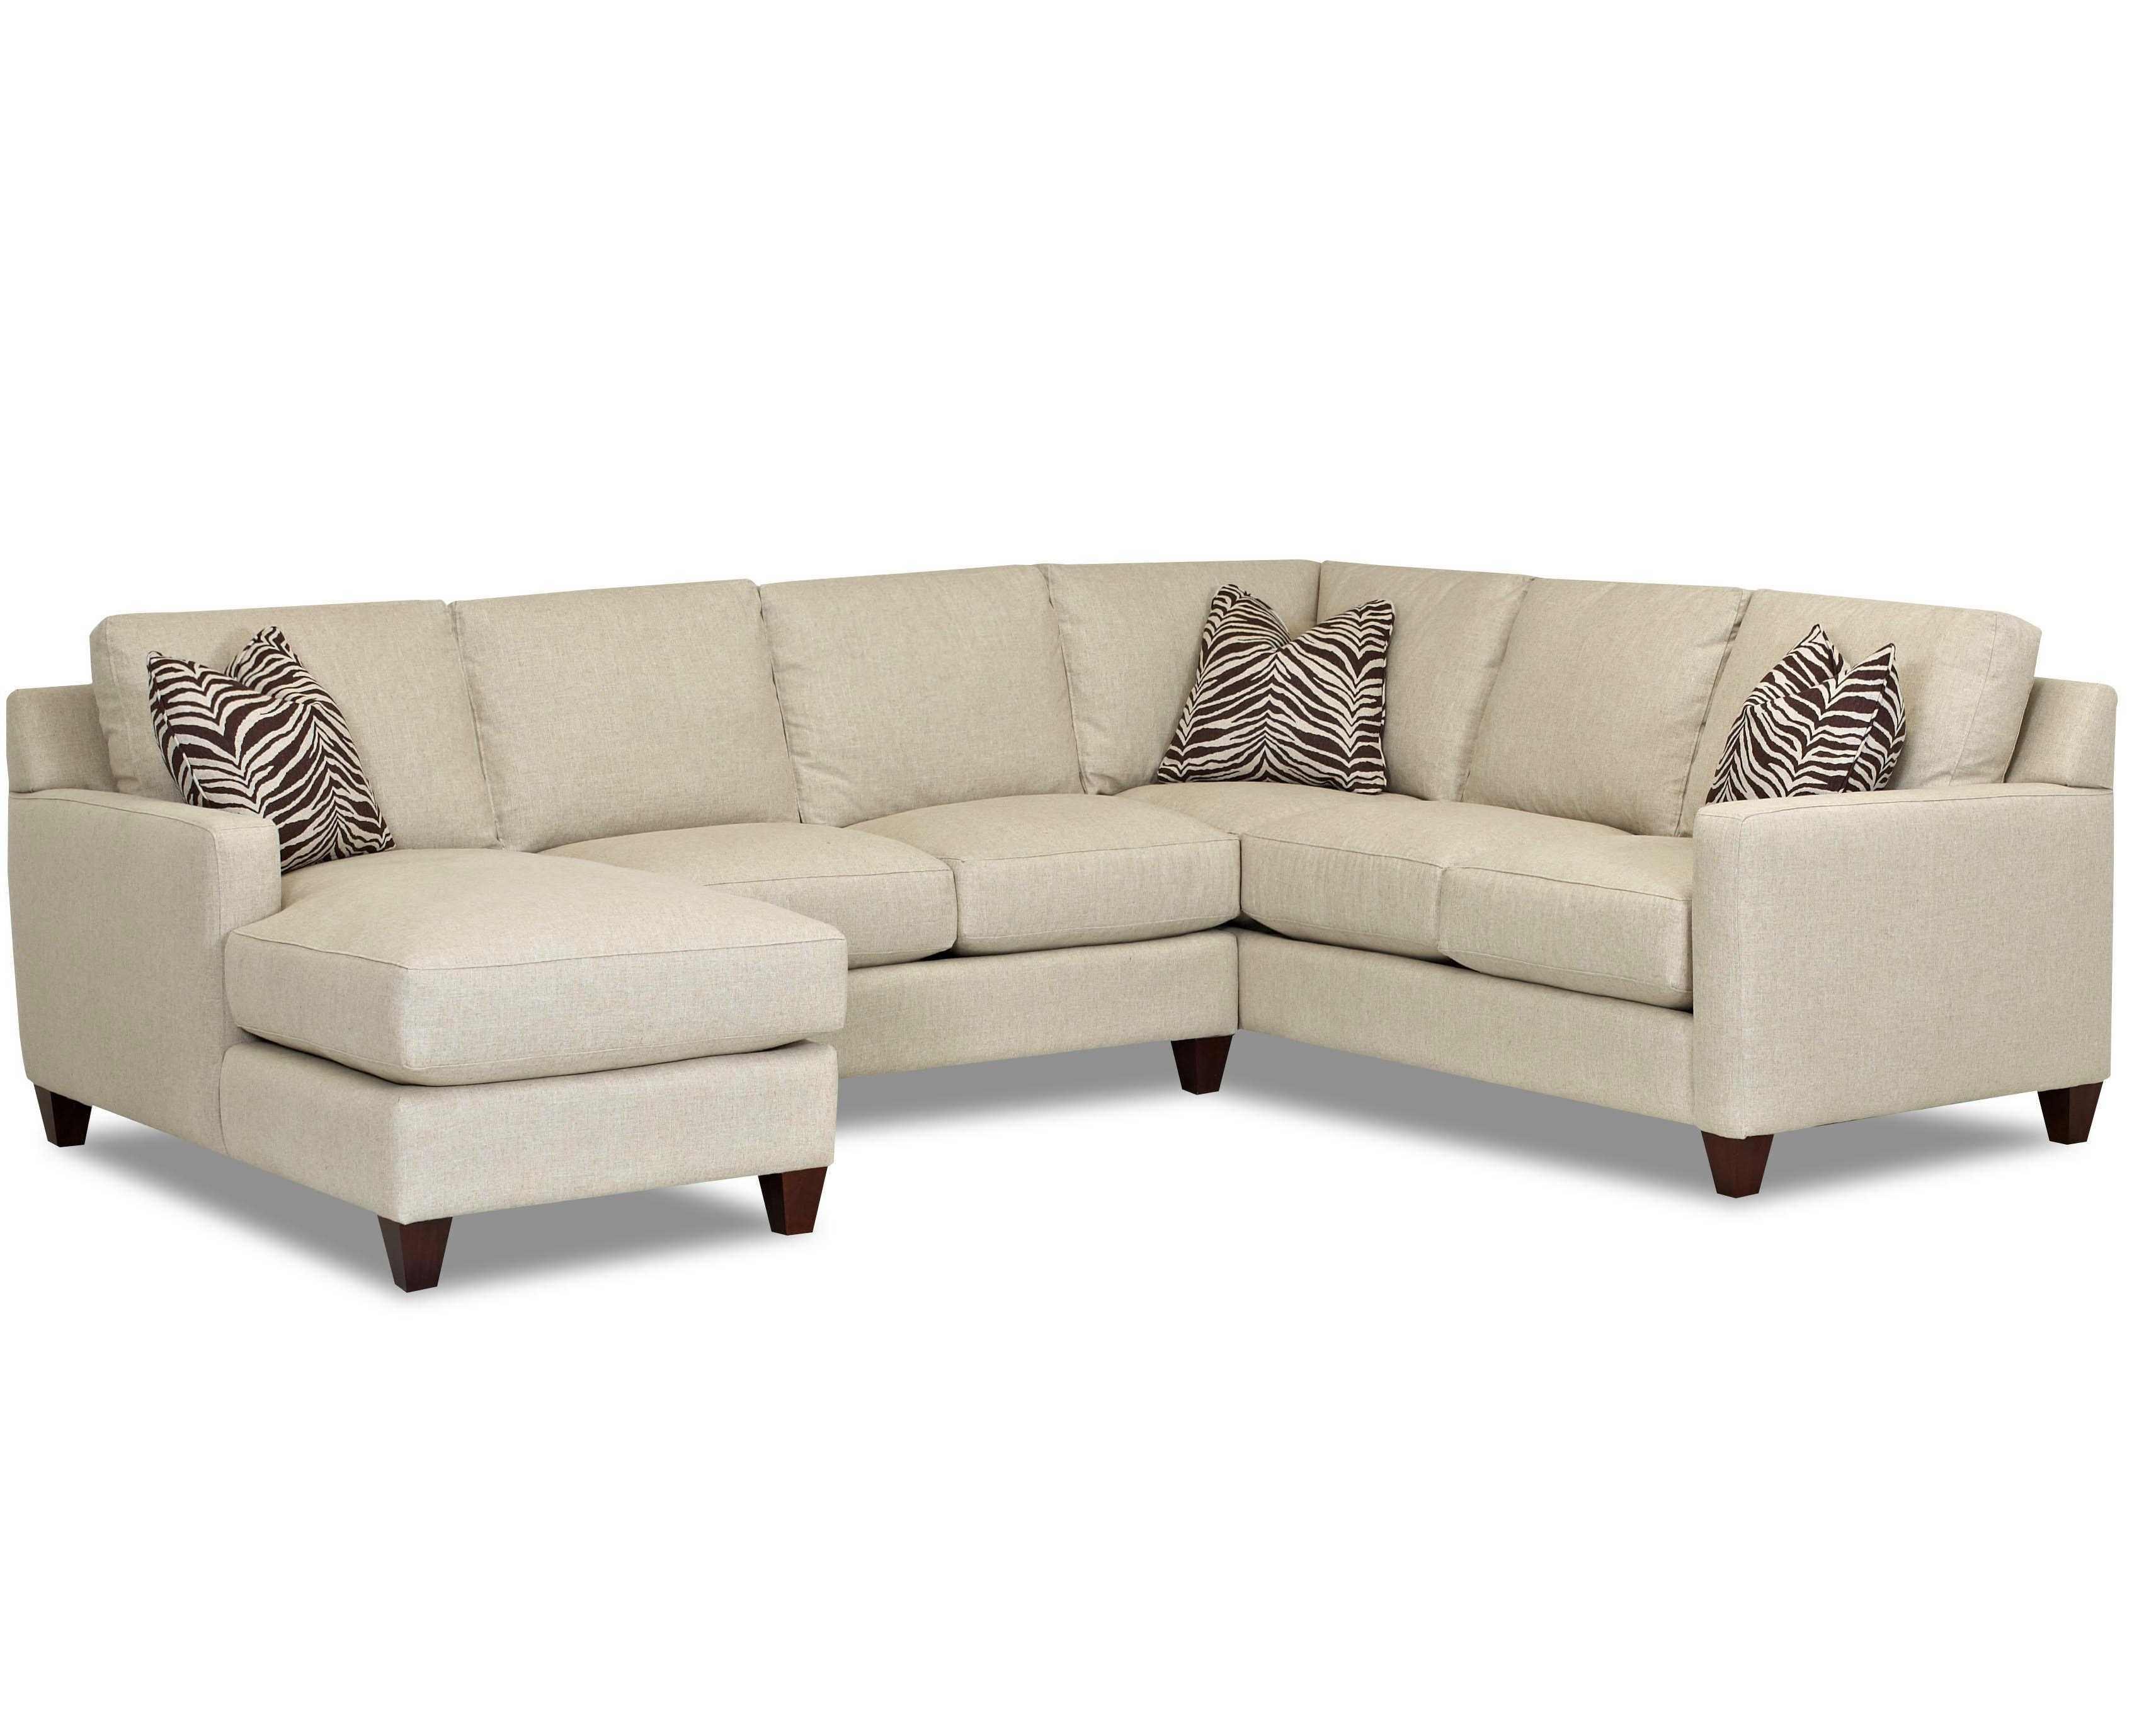 Contemporary Stationary Sectional With Track Arms, Right Side For Famous Right Arm Chaises (View 5 of 15)